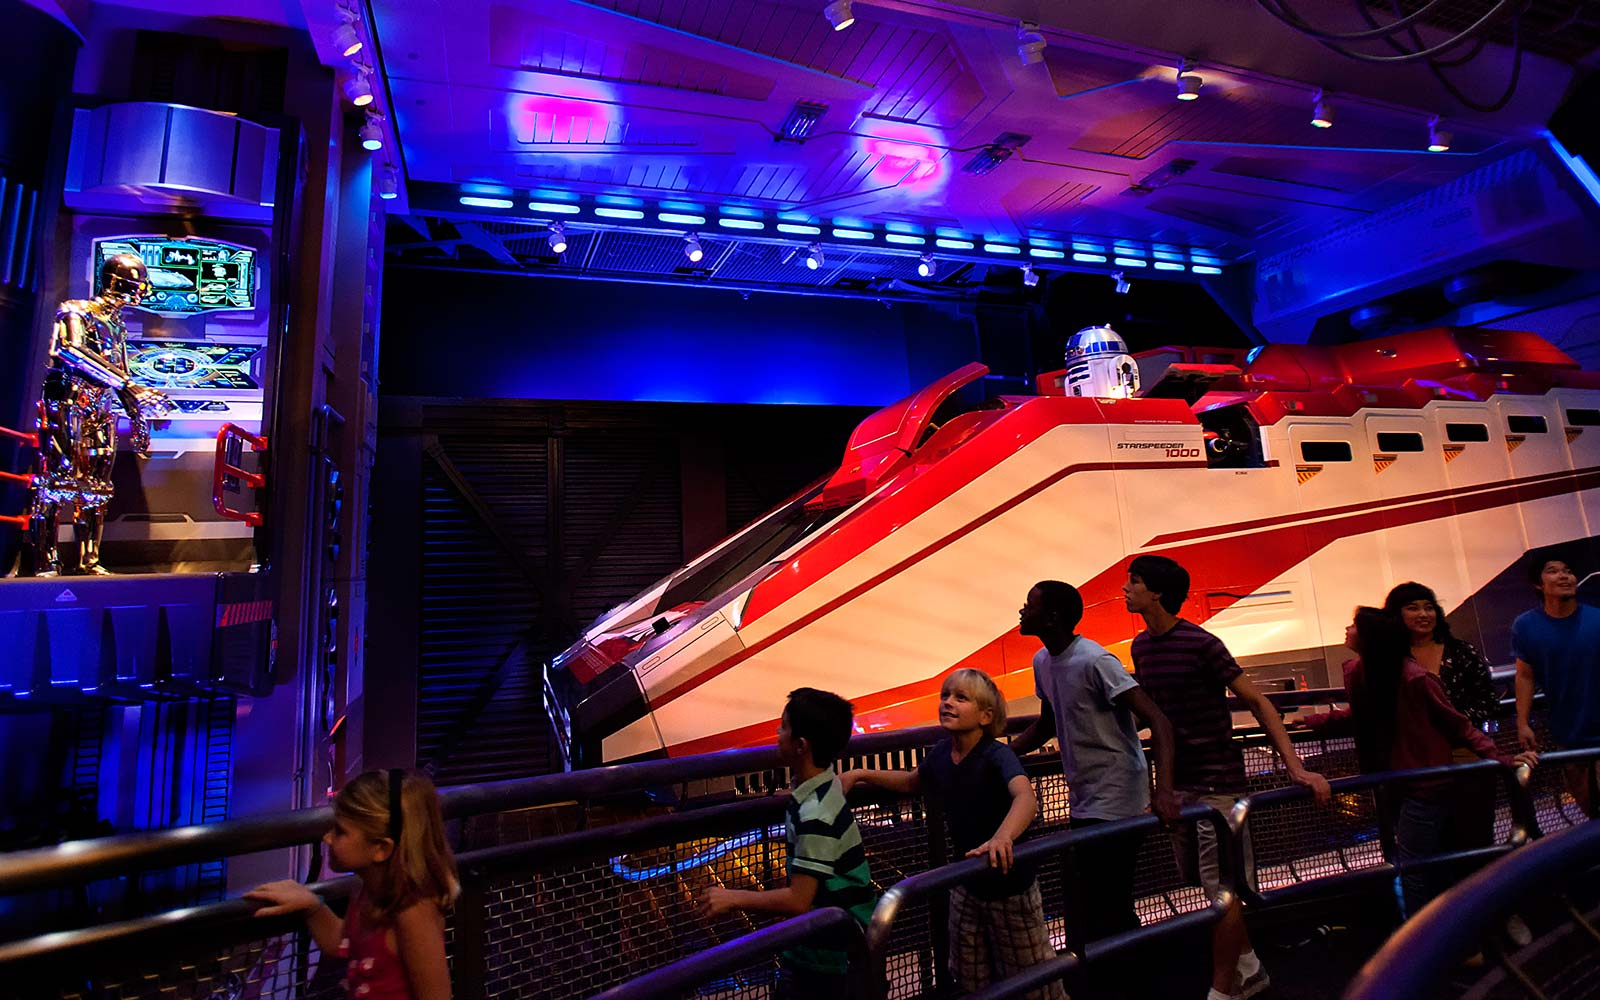 Star Wars Star Tours Attraction Ride Disneyland Anaheim California